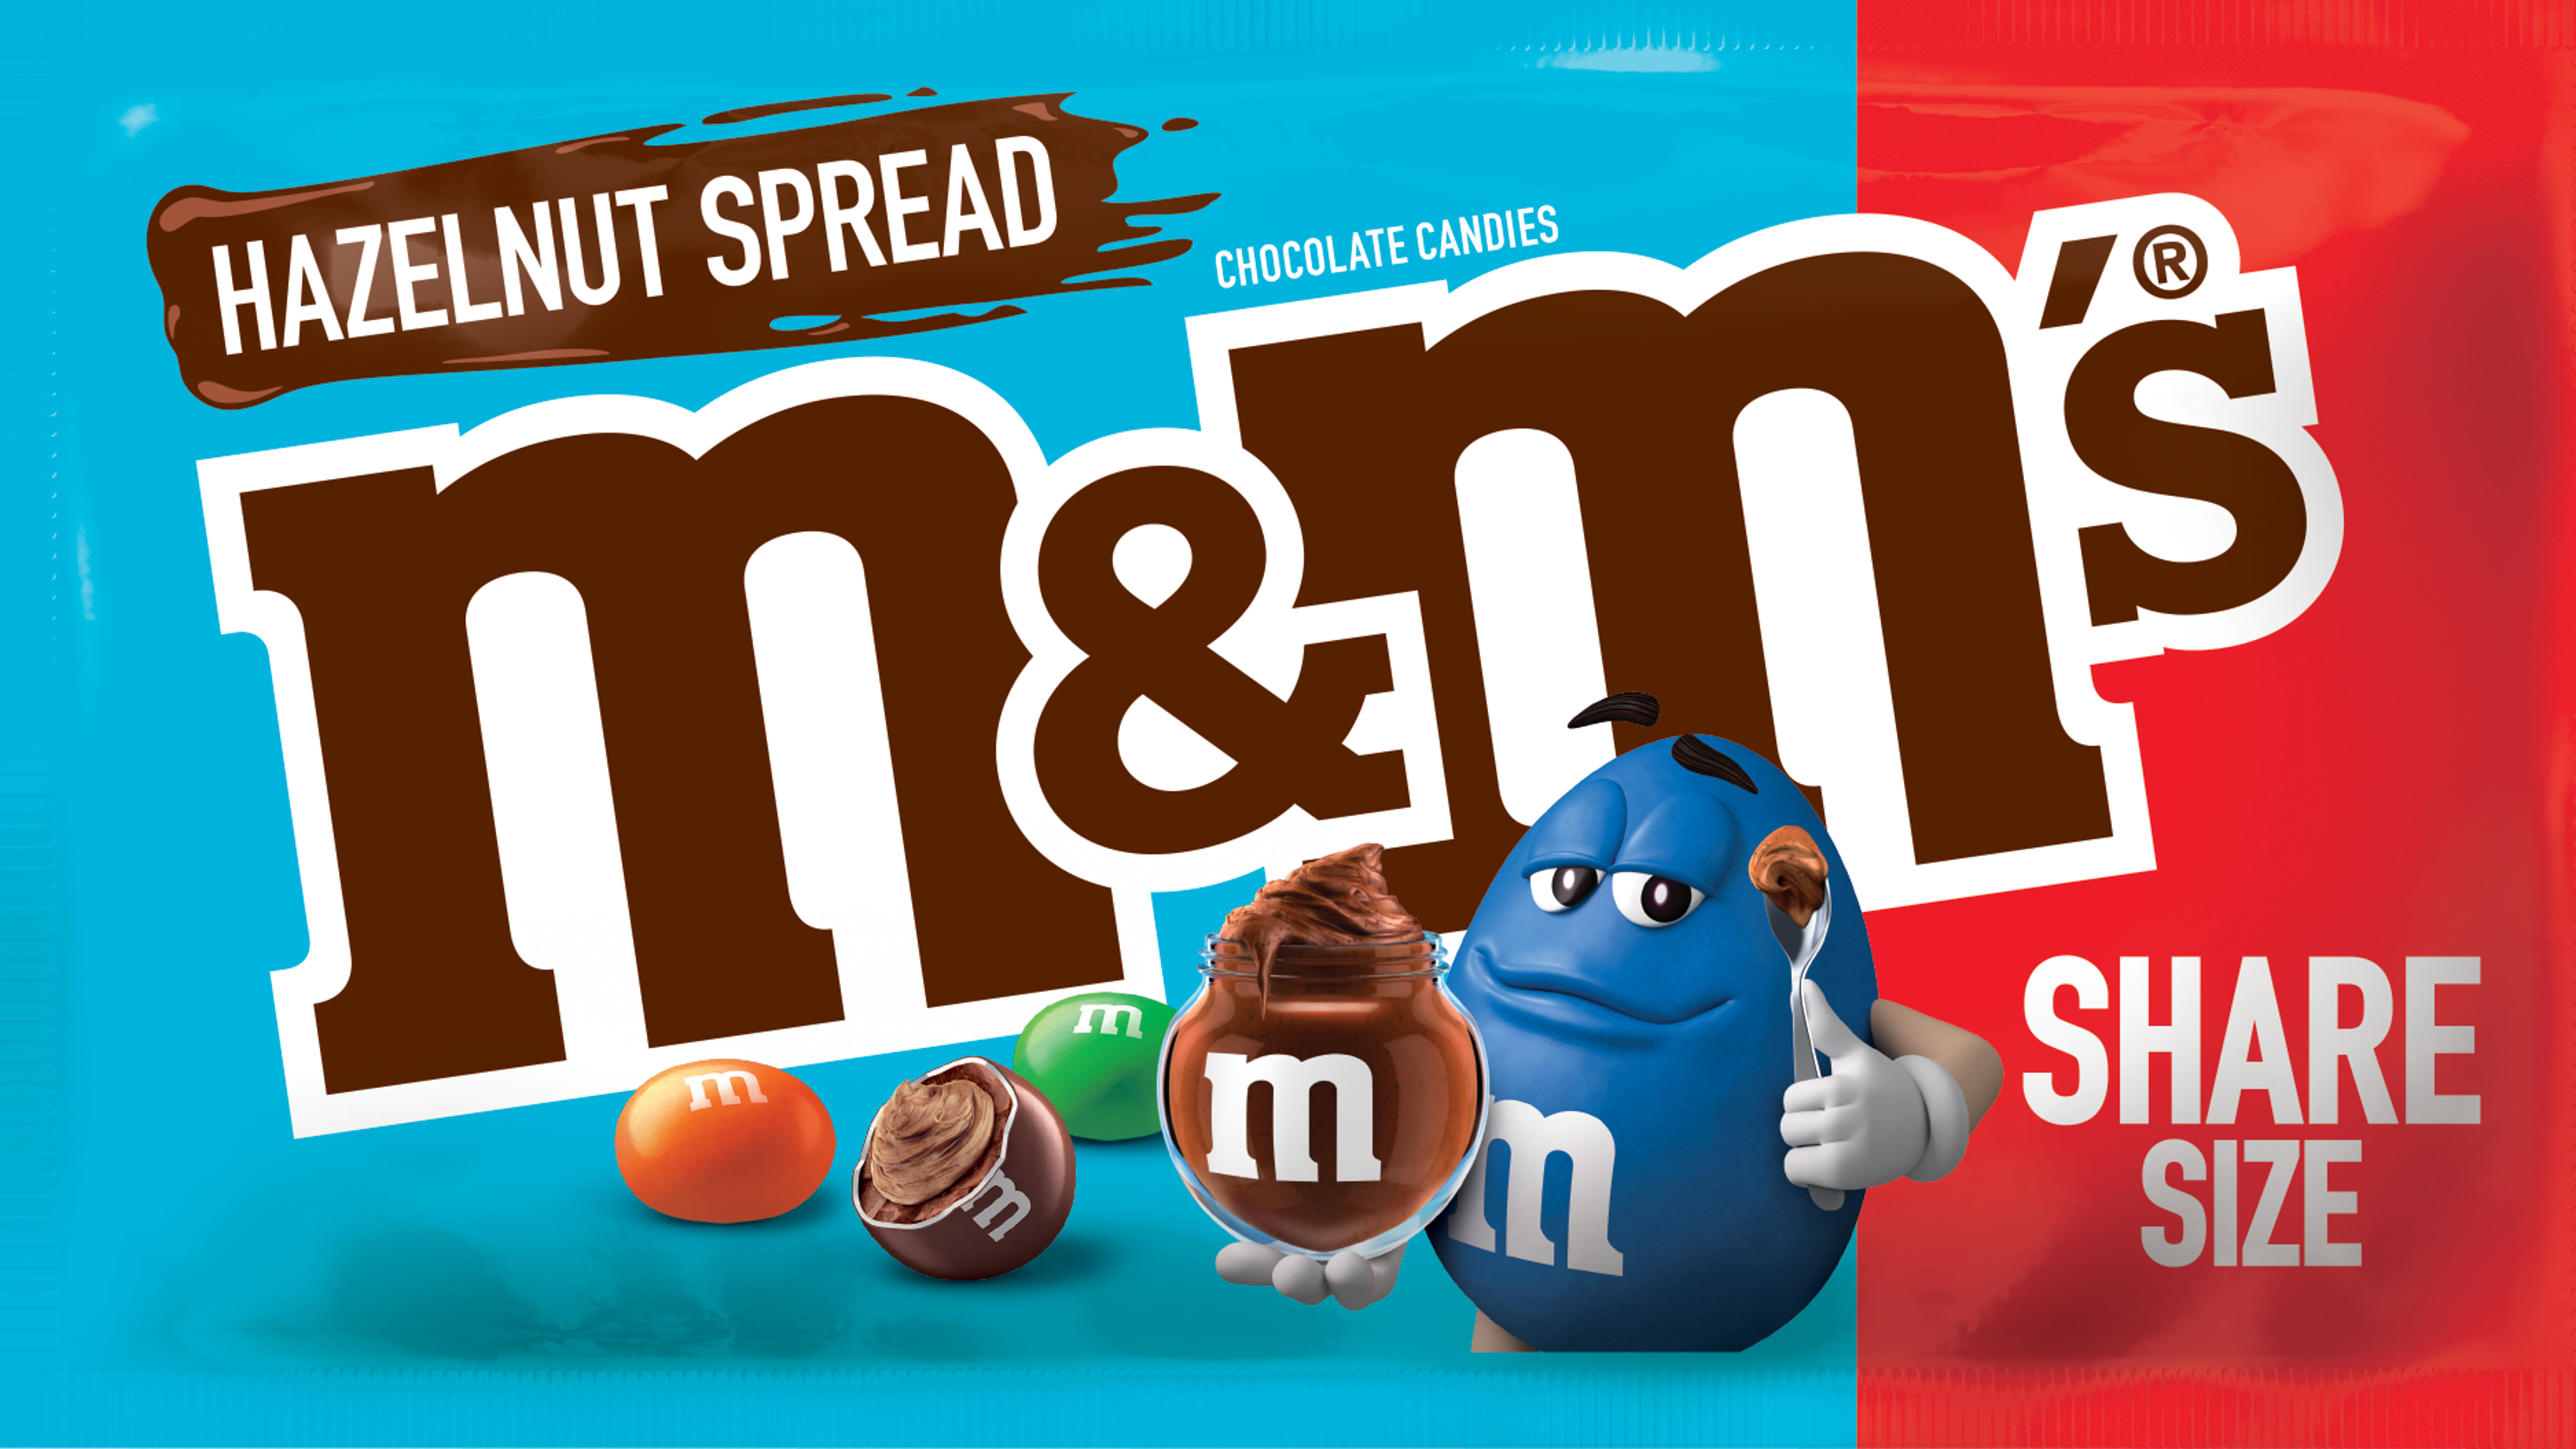 New hazelnut spread M&M's are coming in April along with new Reese's cups